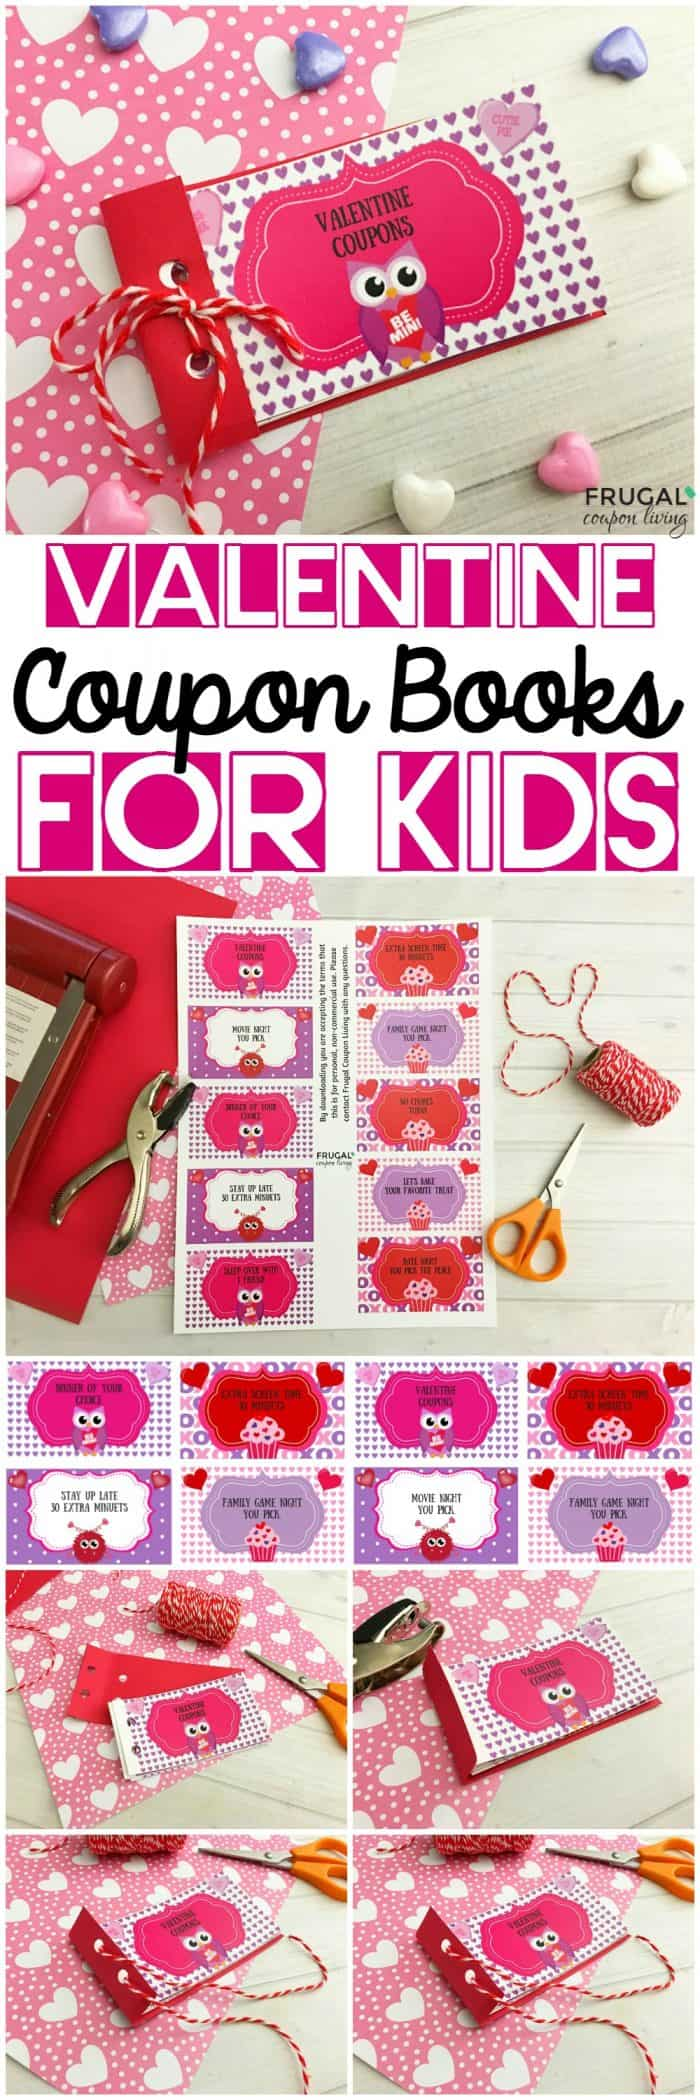 kid-valentine-coupon-books-long-collage-frugal-coupon-living